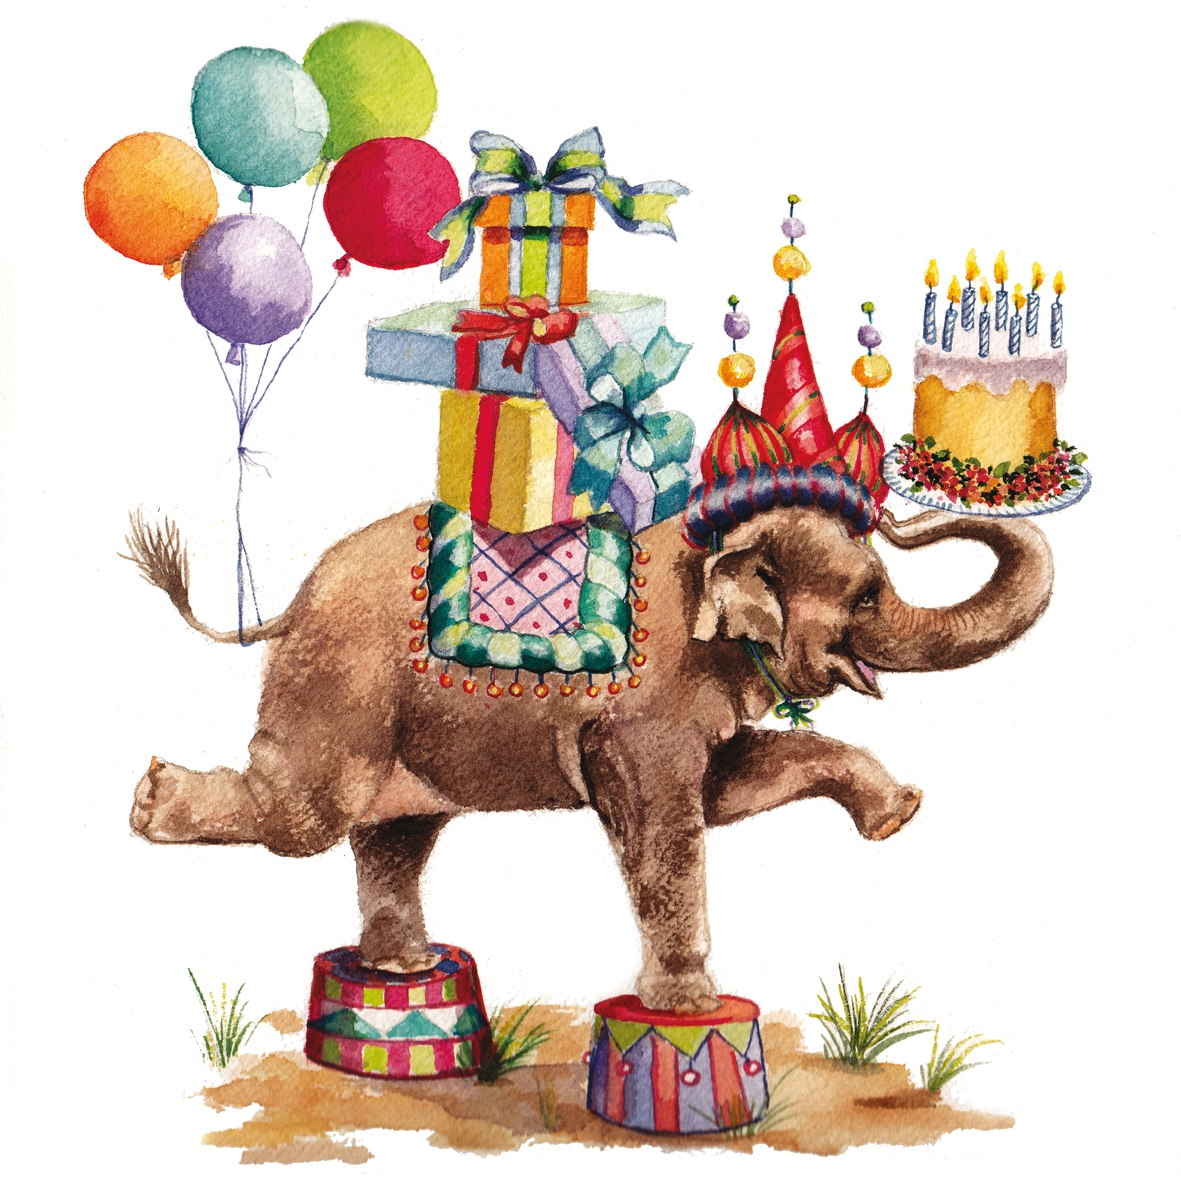 Cocktail Servietten Jumbo Birthday white 25x25 cm,  Tiere - Elefanten,  Ereignisse - Geburtstag,  Everyday,  cocktail servietten,  Geburtstag,  Kinder,  Elefant